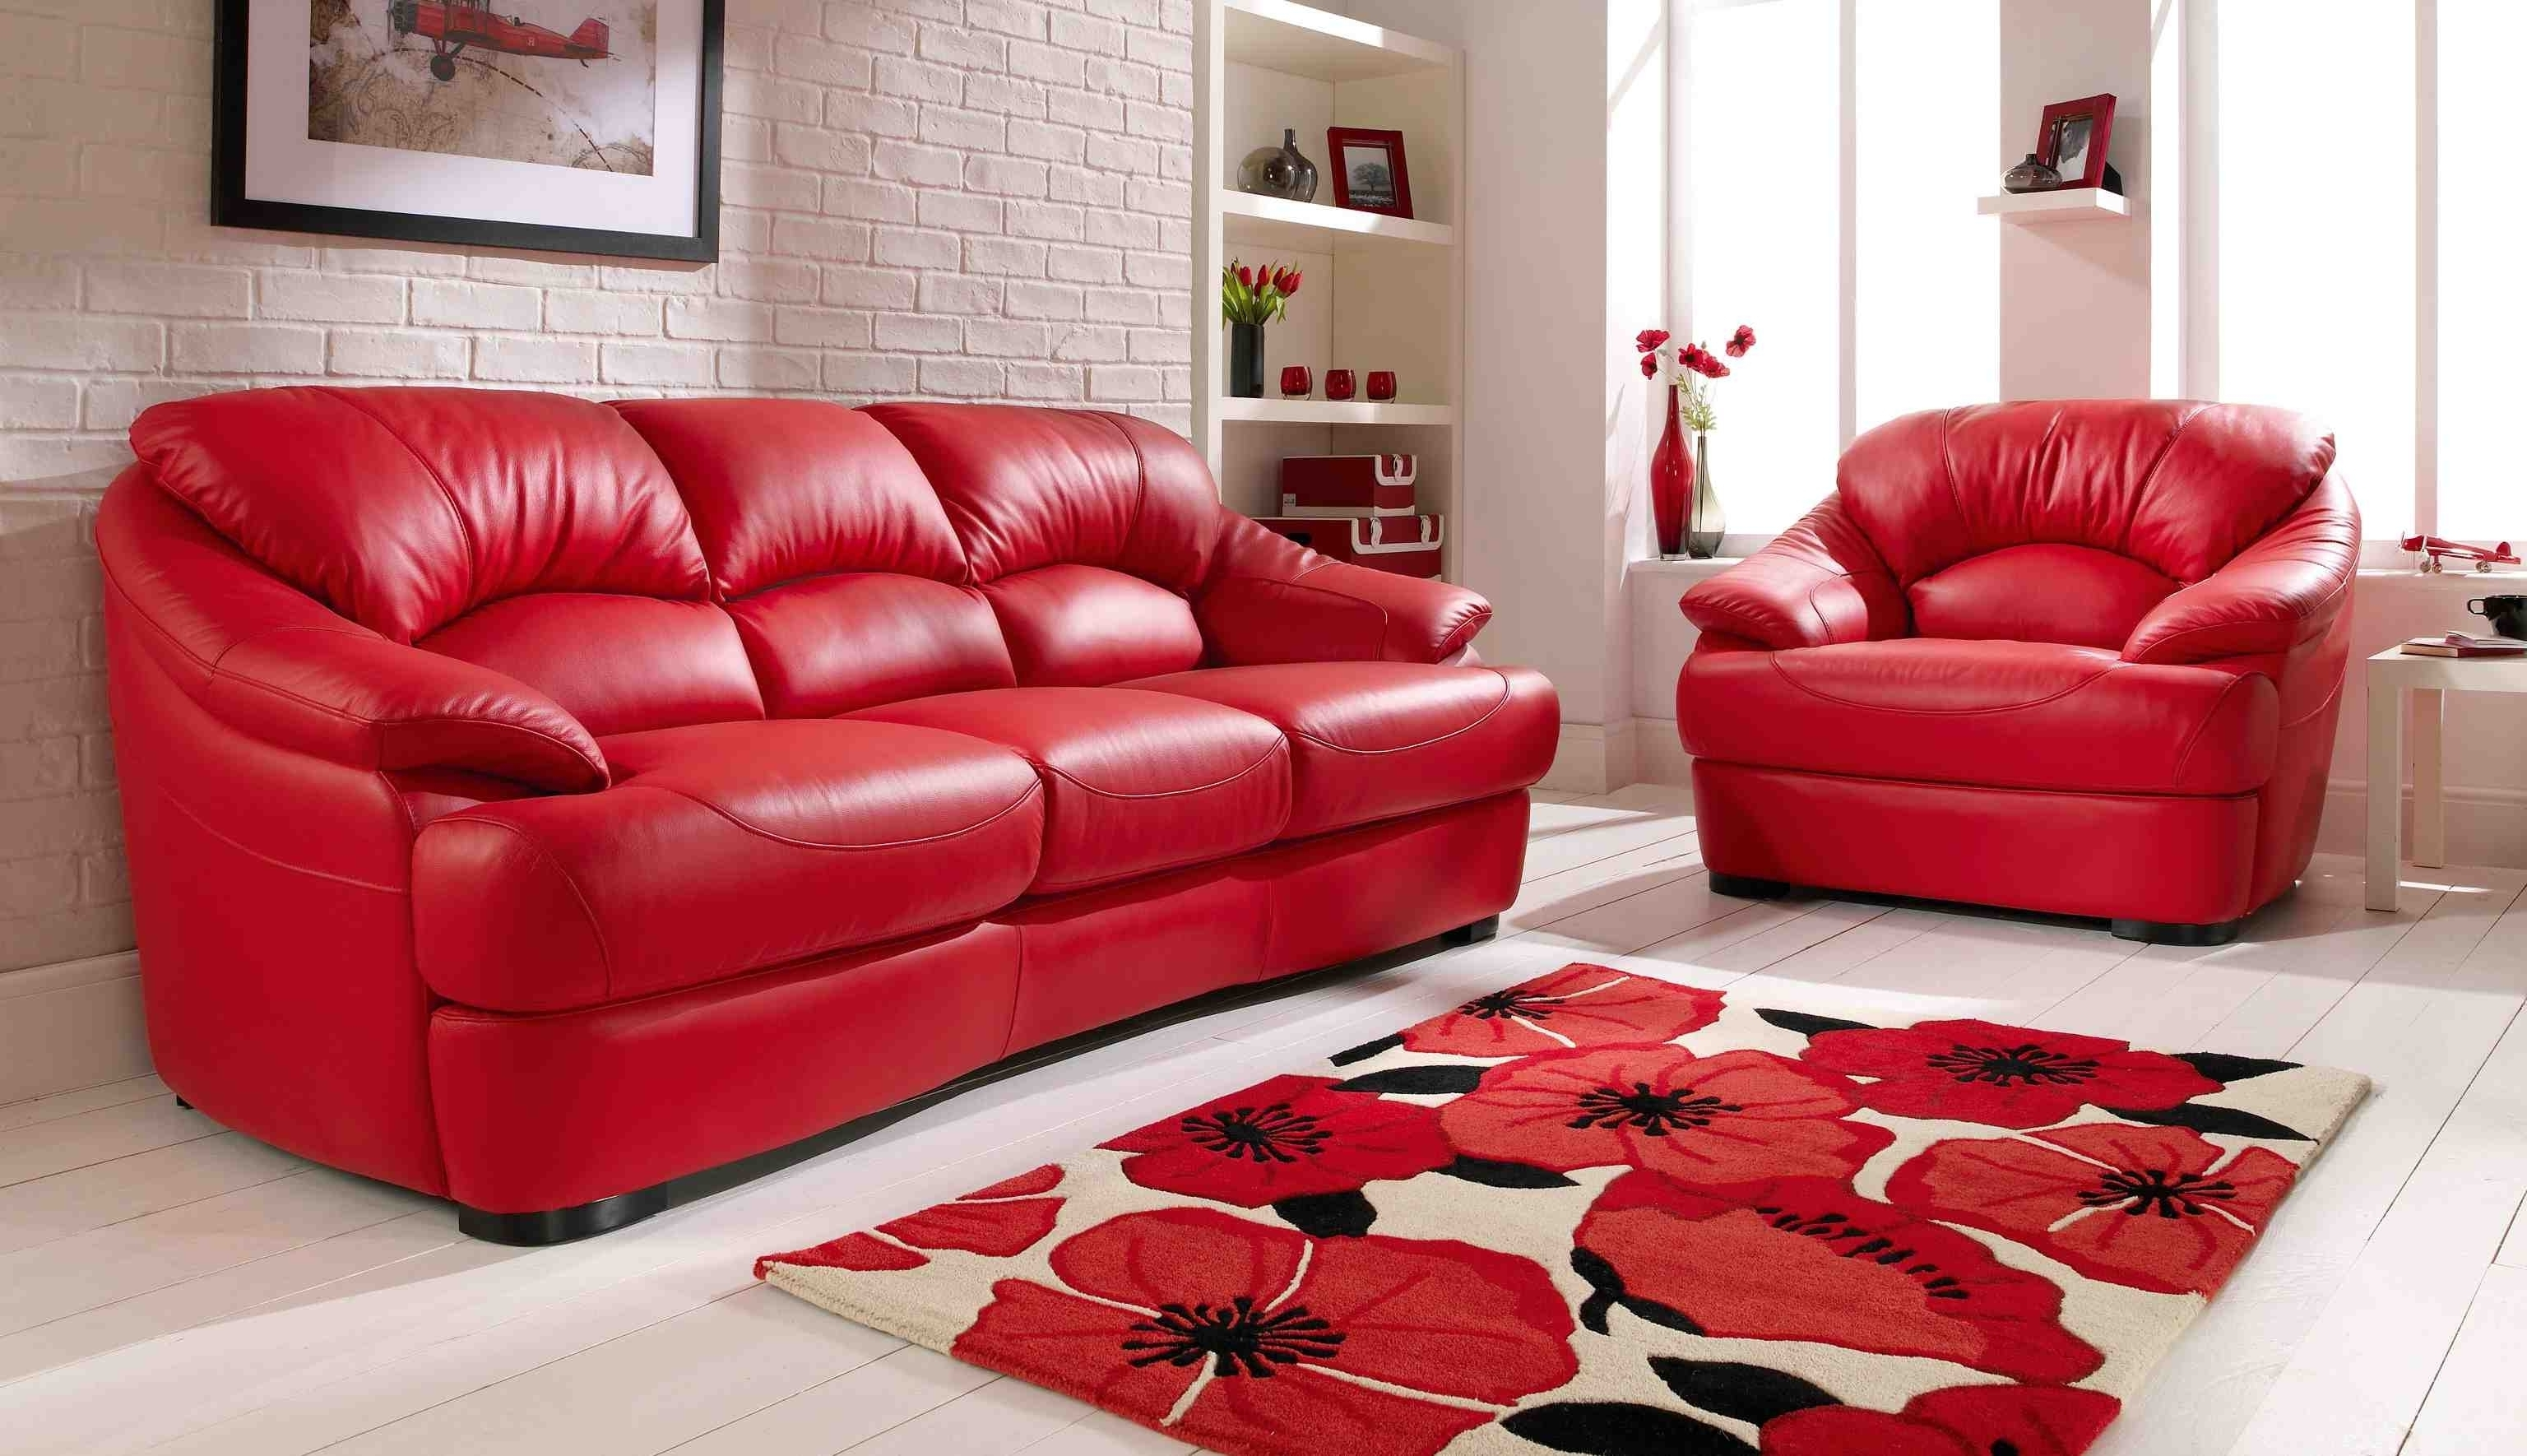 Widely Used Red Leather Sofa Living Room Ideas Home Design Ideas Pertaining To For Red Leather Couches For Living Room (View 20 of 20)